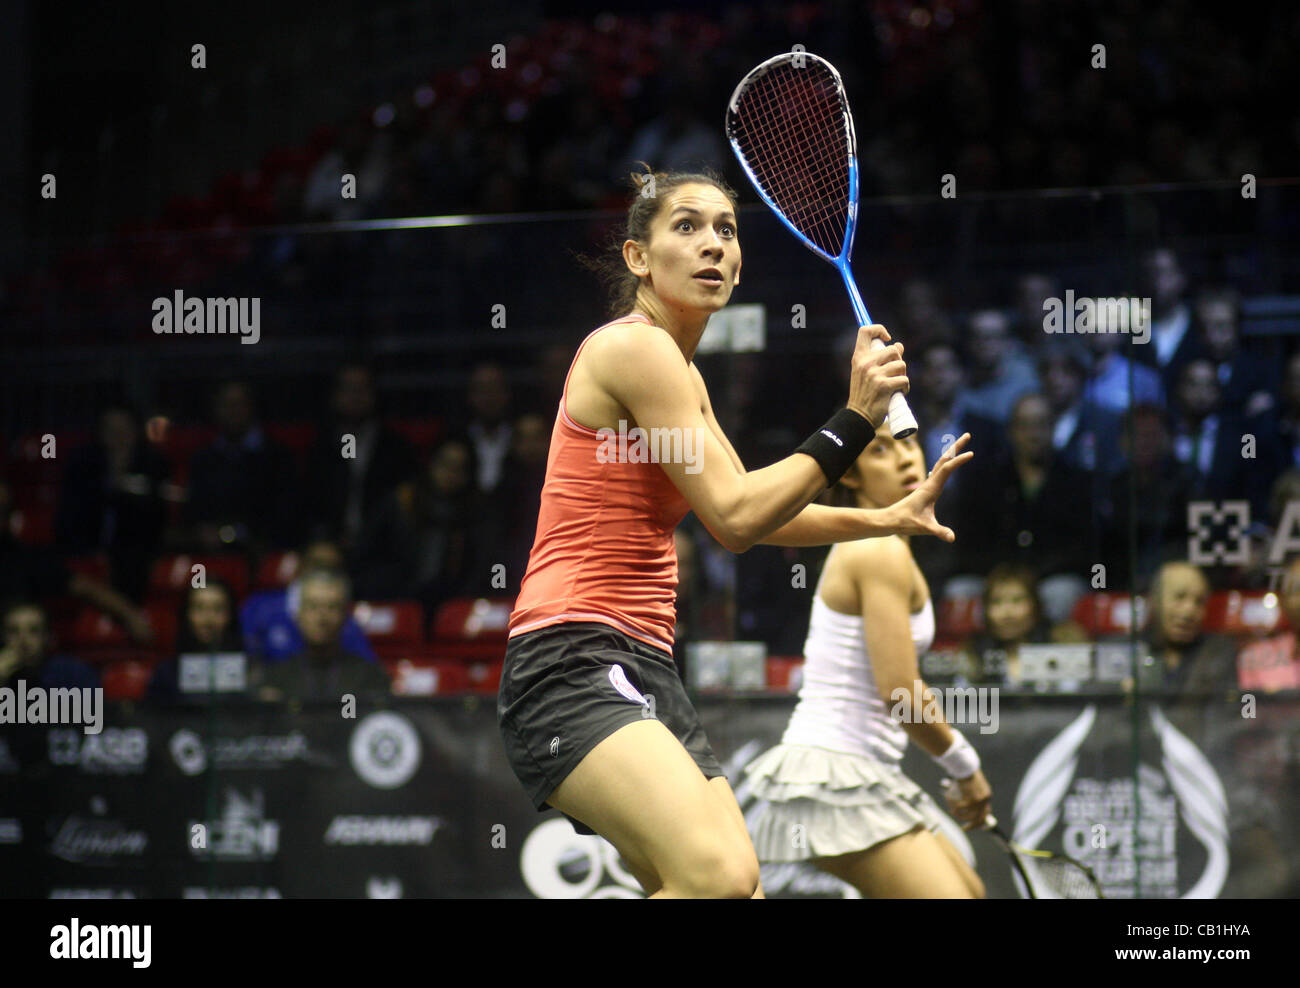 18.05.2012 The O2, London, England. Joelle King (NZL) in action against Nicol David (MAS) during their quarter-final - Stock Image